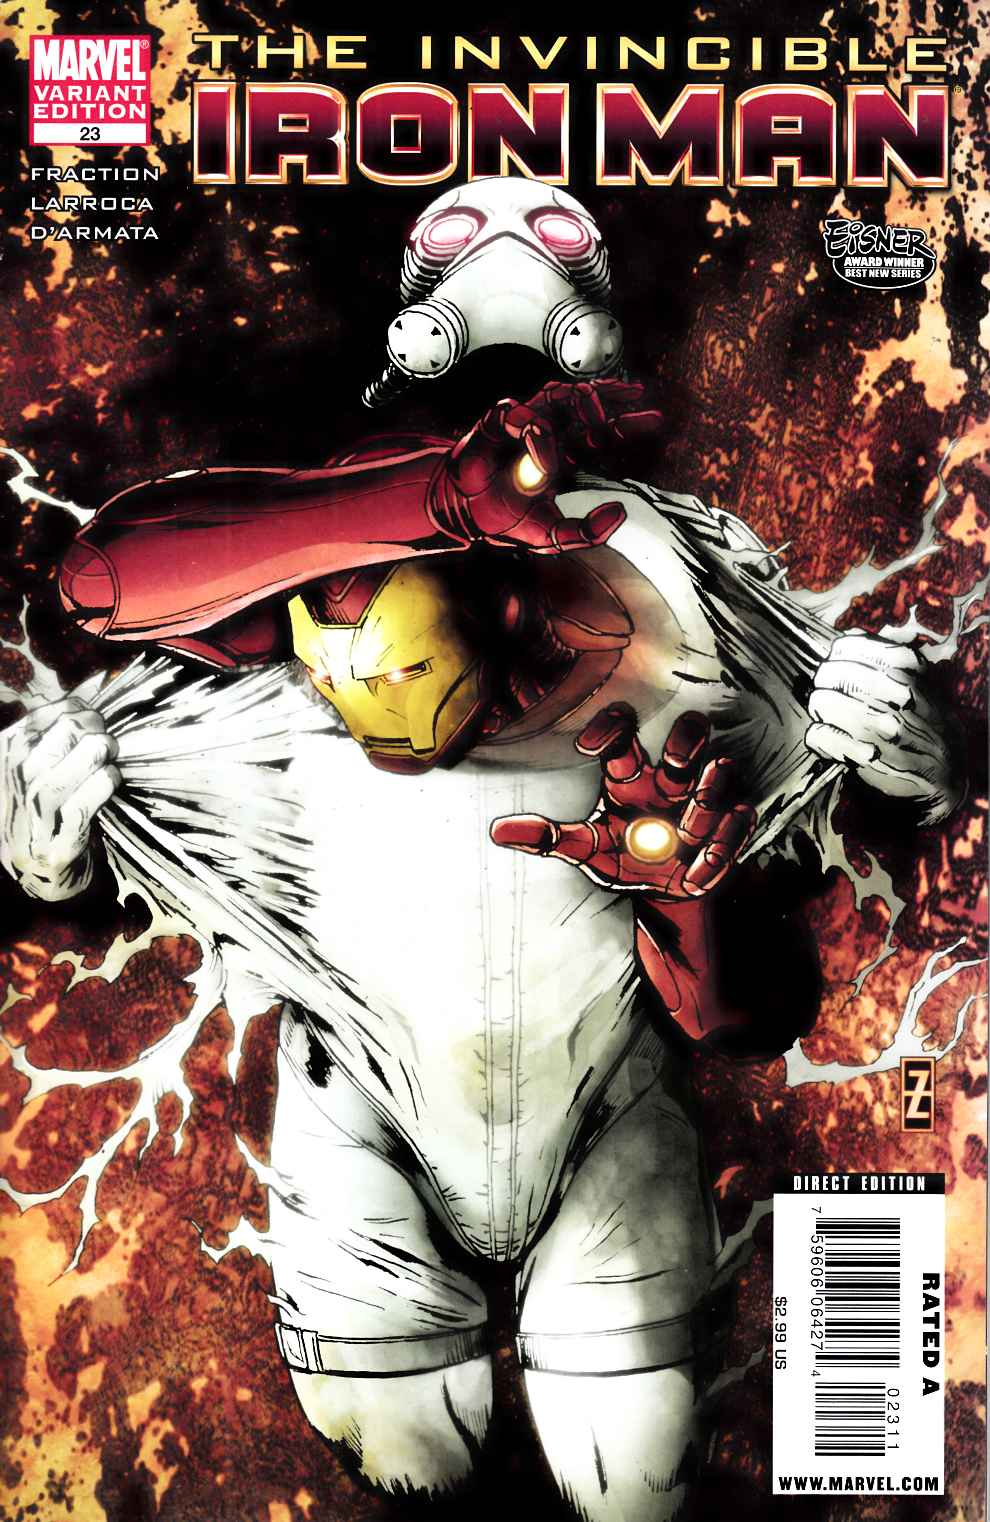 Invincible Iron Man #23 Zircher Variant Cover Very Fine (8.0) [Marvel Comic] THUMBNAIL